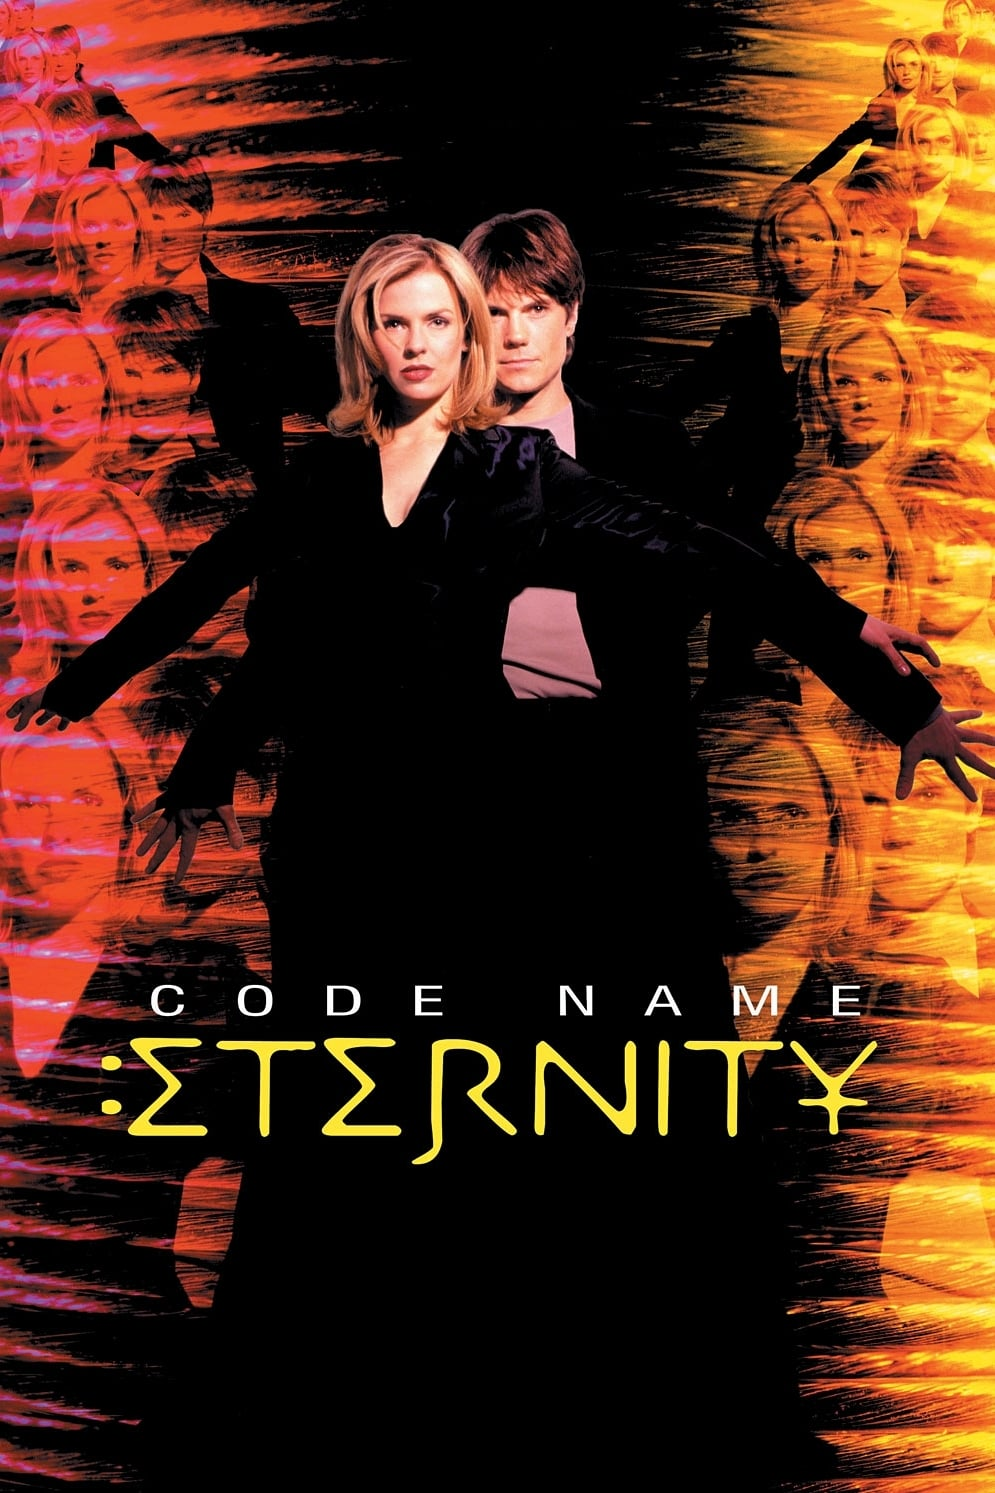 Code Name: Eternity (2000)